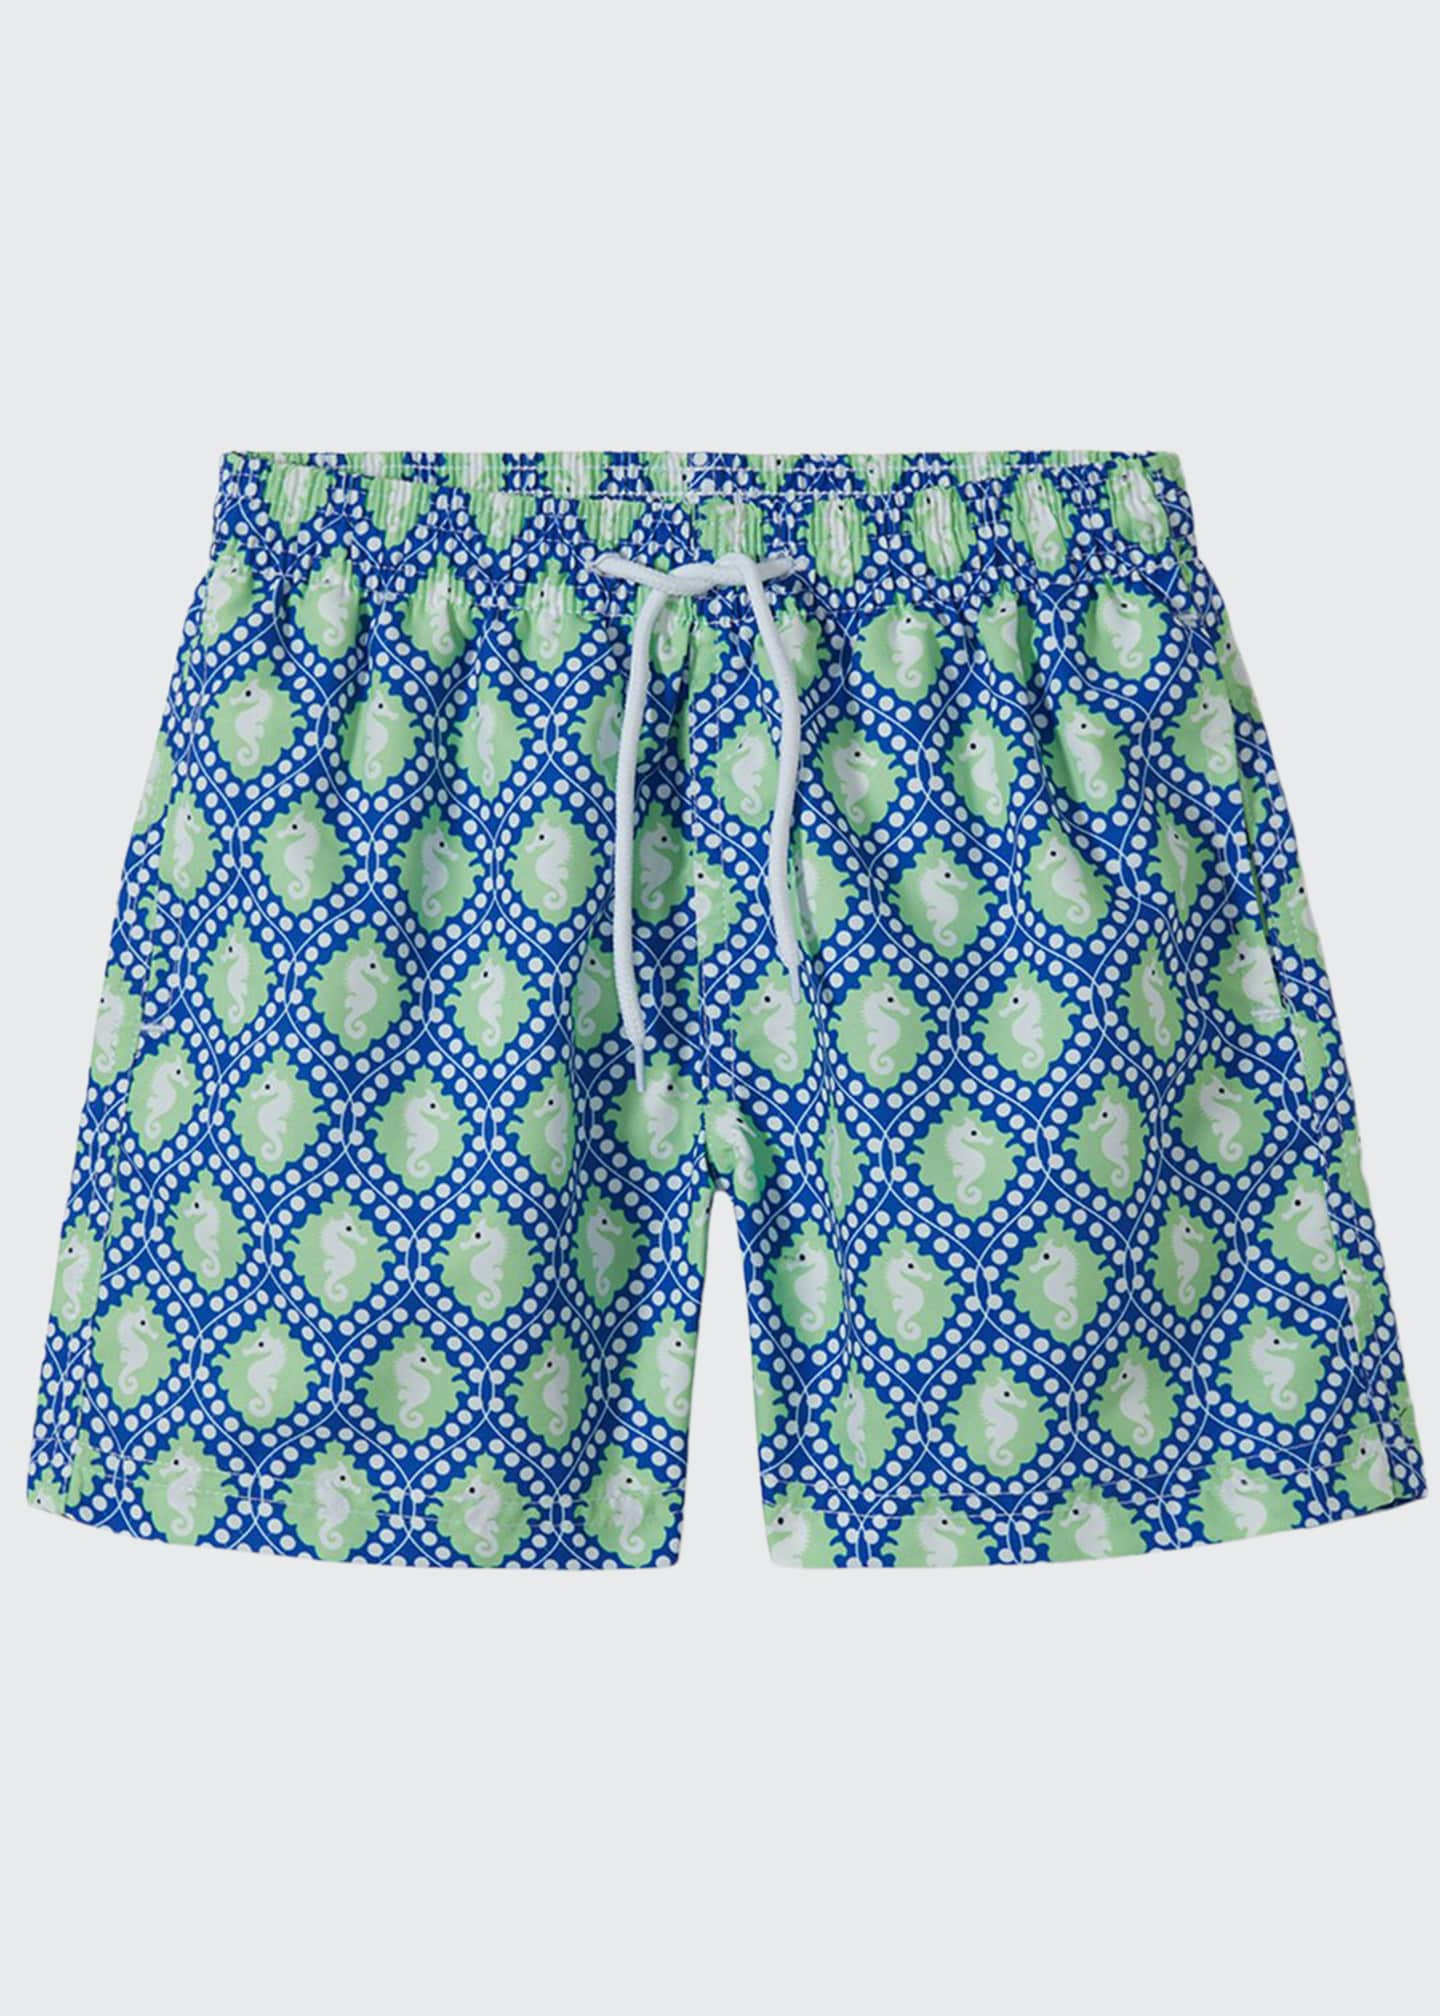 Image 1 of 1: Boys' Sea Horse Swim Trunks, 2-12